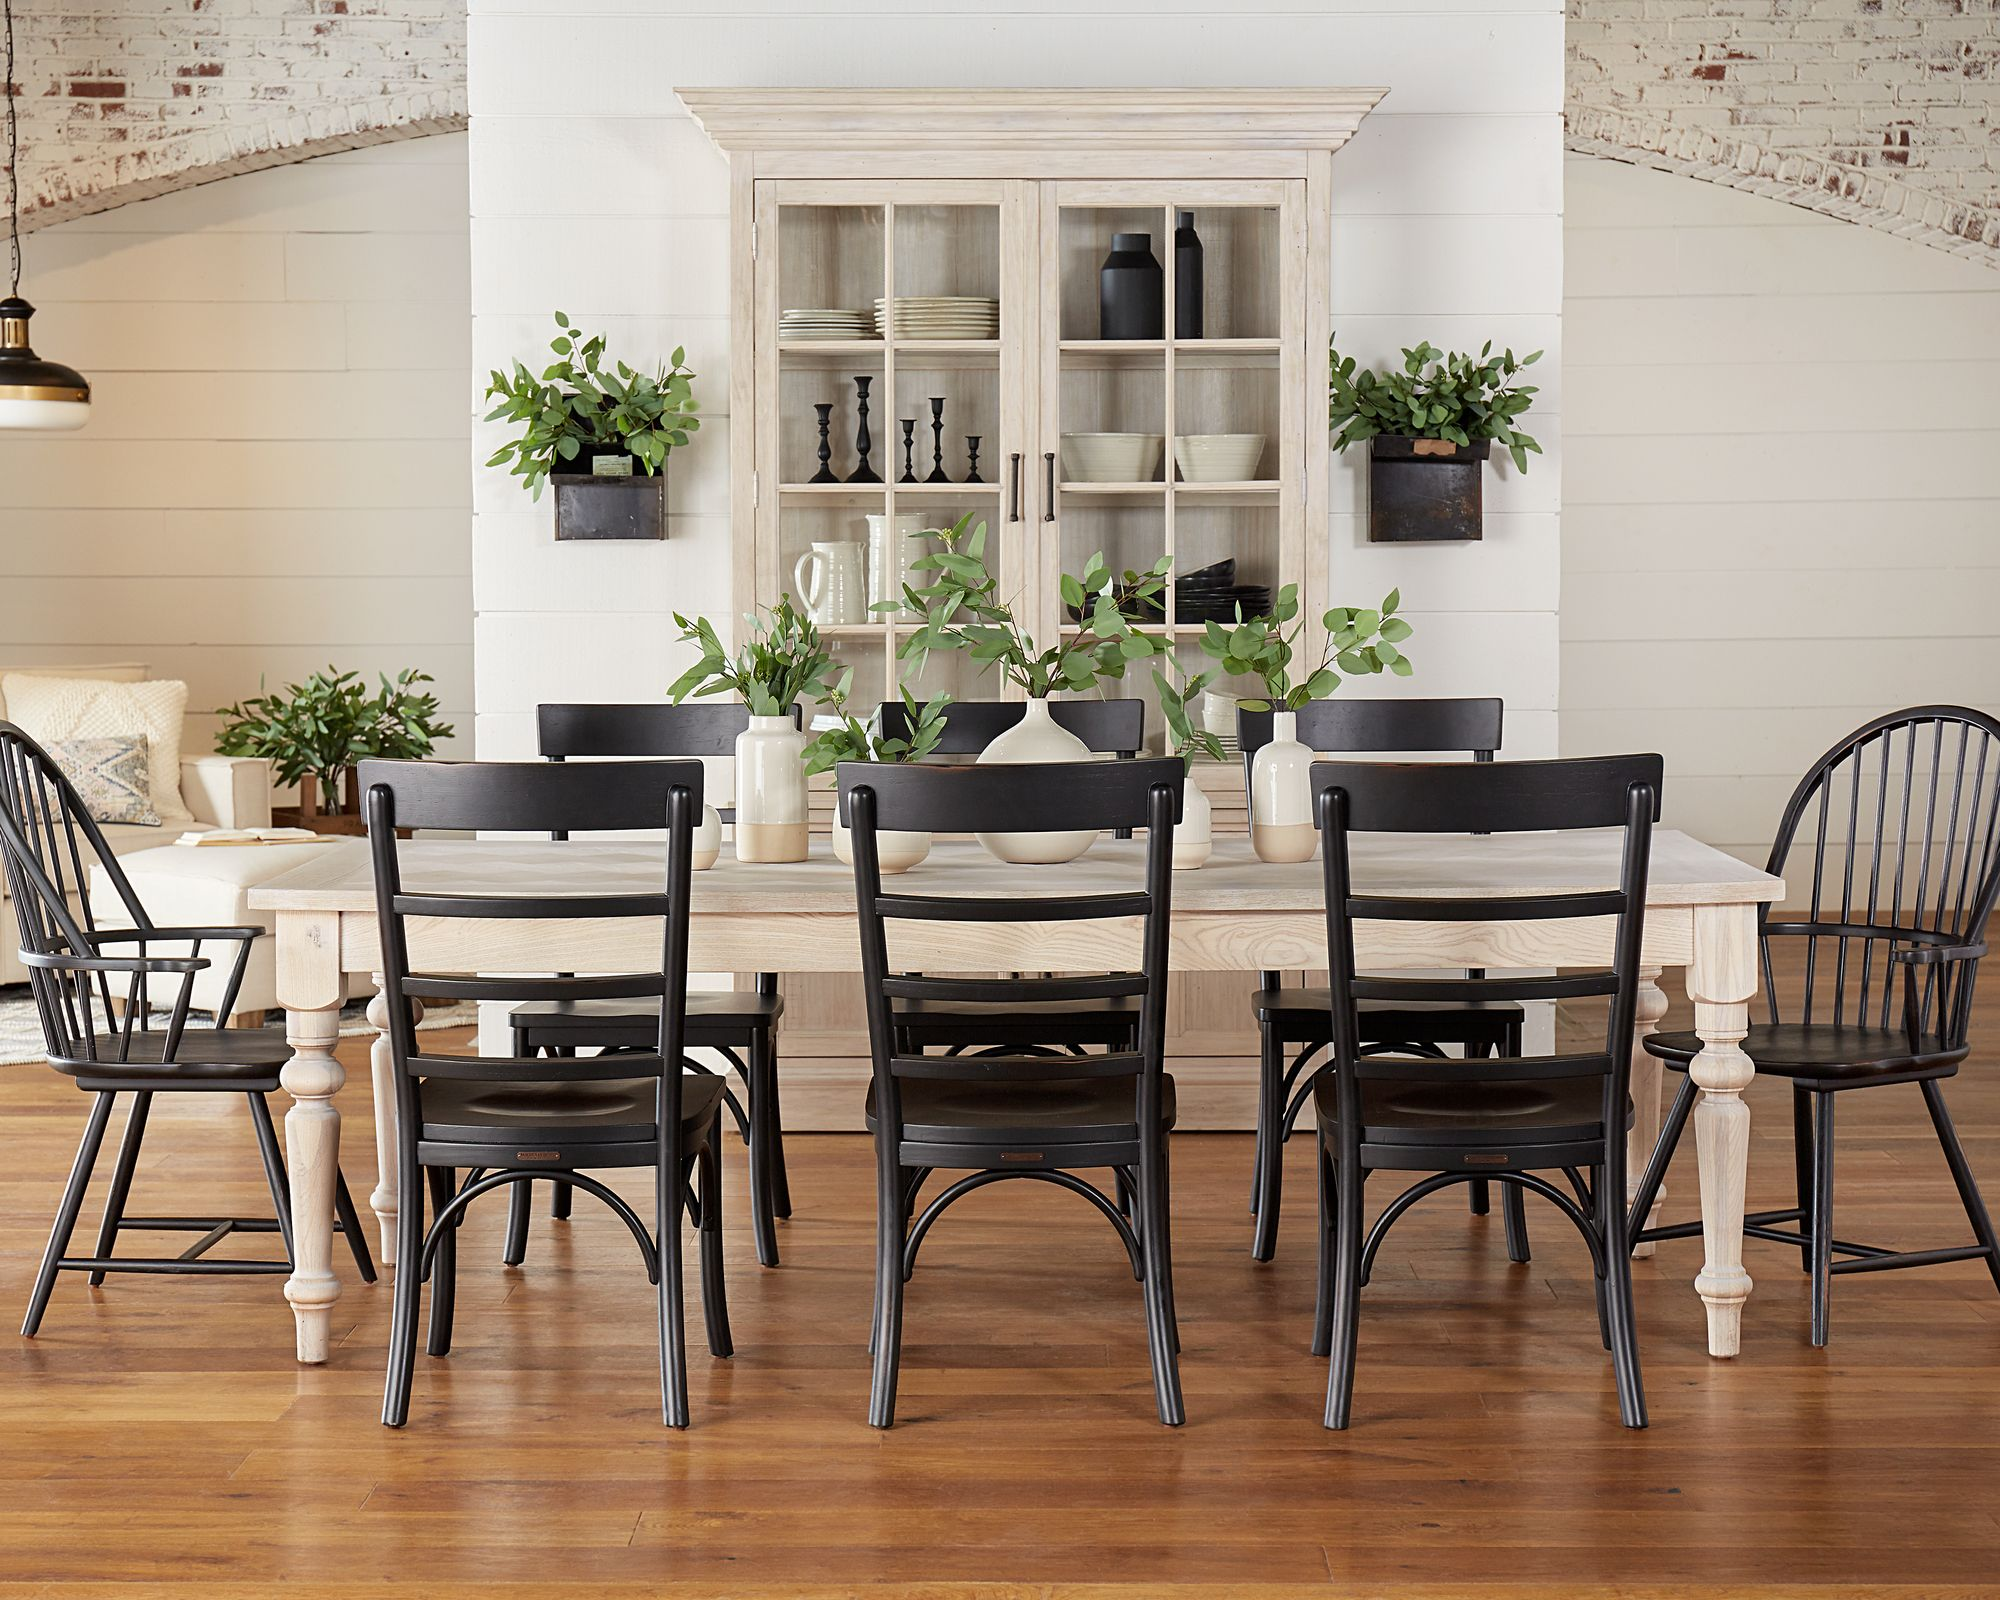 Https Magnoliahome Azureedge Net Libraries Magnoliahome Media Product Images V 20113be Joanna Gaines Dining Room Magnolia Home Dining Table Dining Room Small